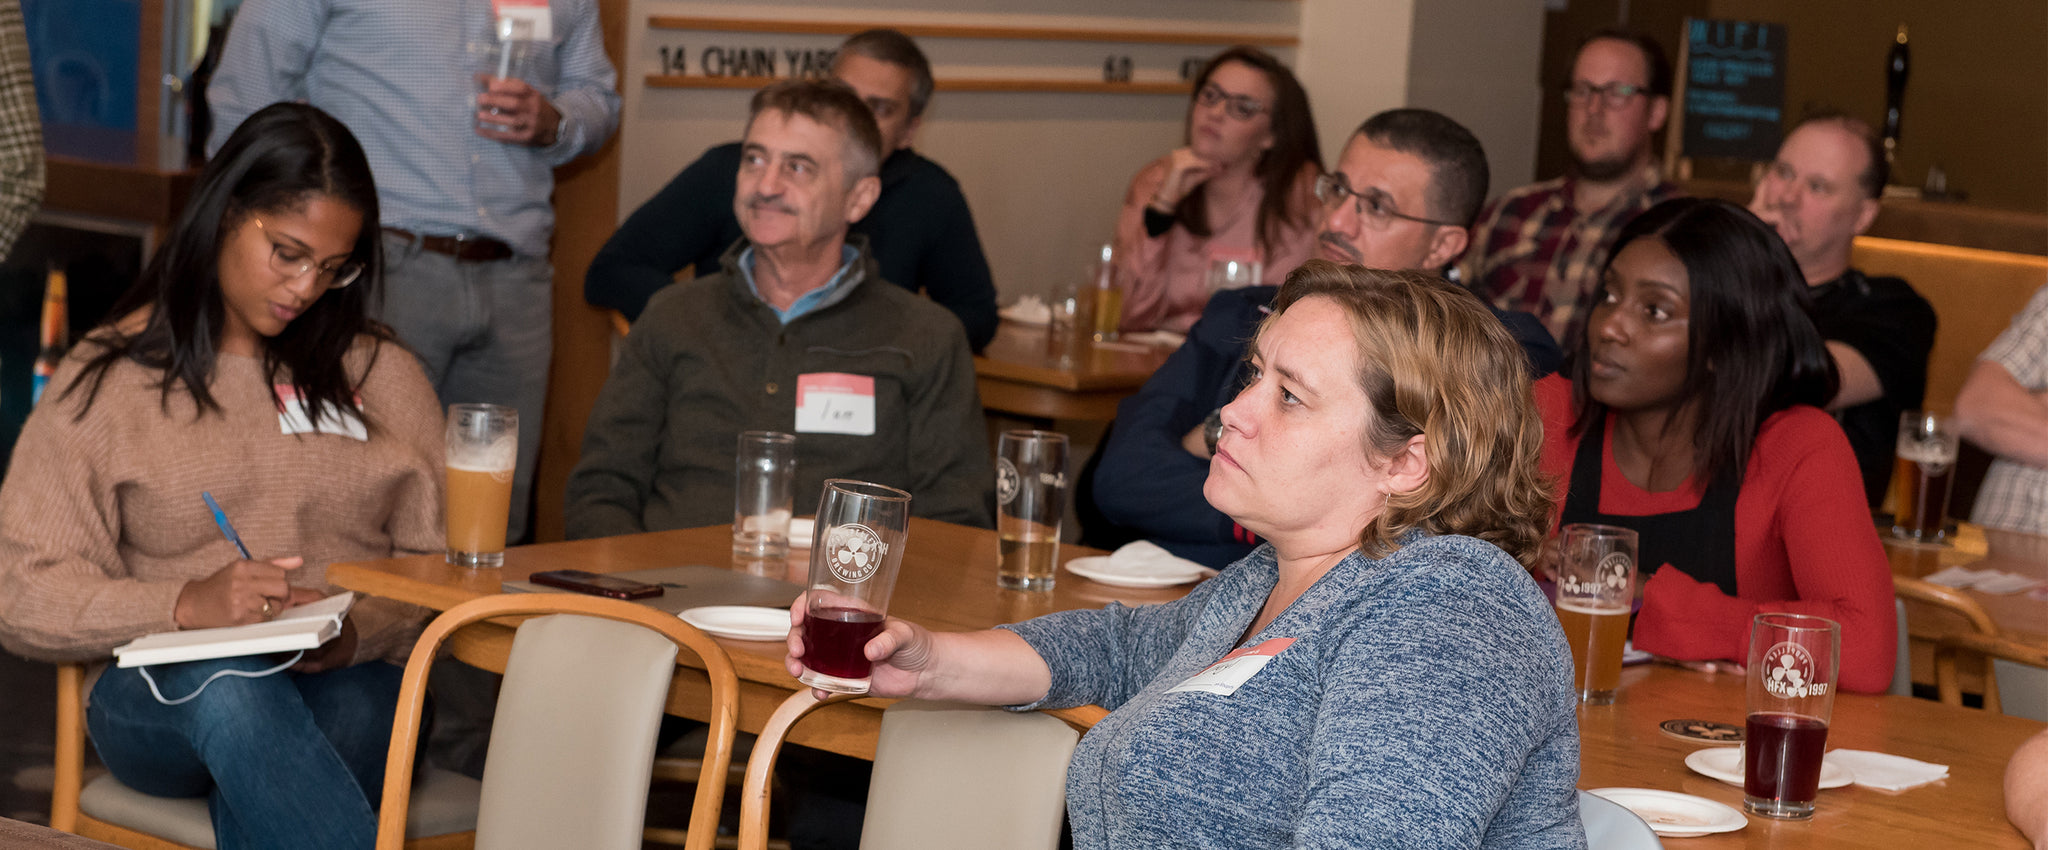 ICYMI: Halifax September Shopify Meetup, September 18